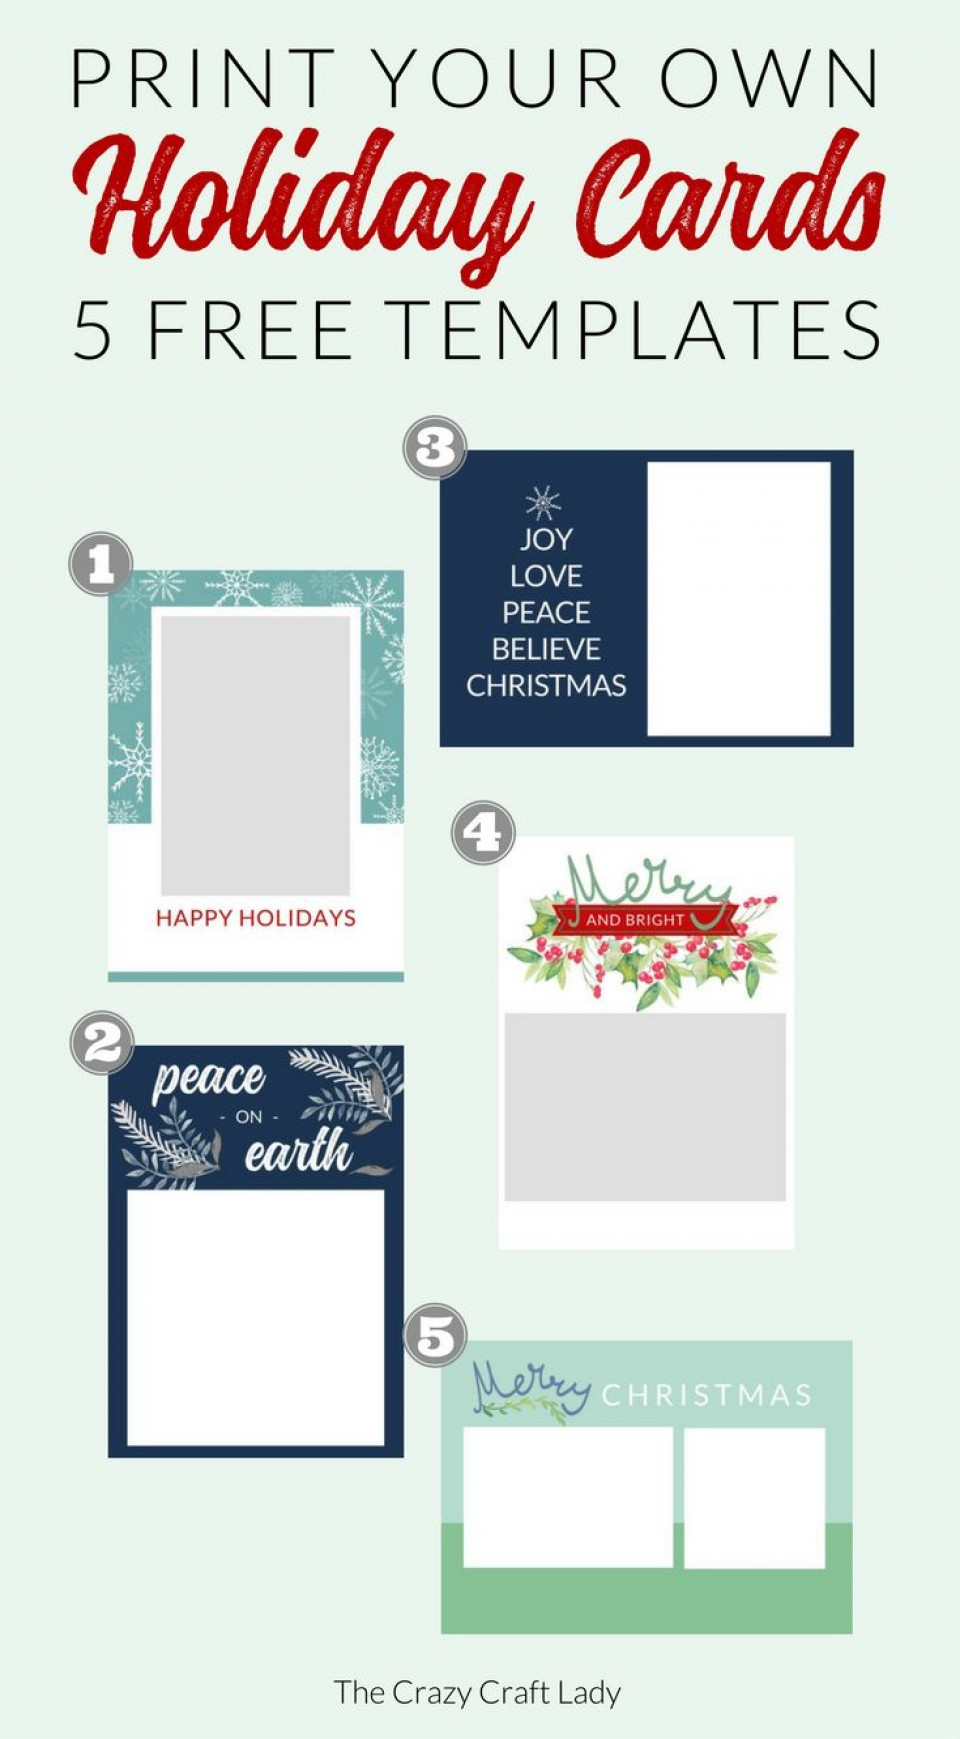 007 Fantastic Free Download Holiday Card Template Concept 960